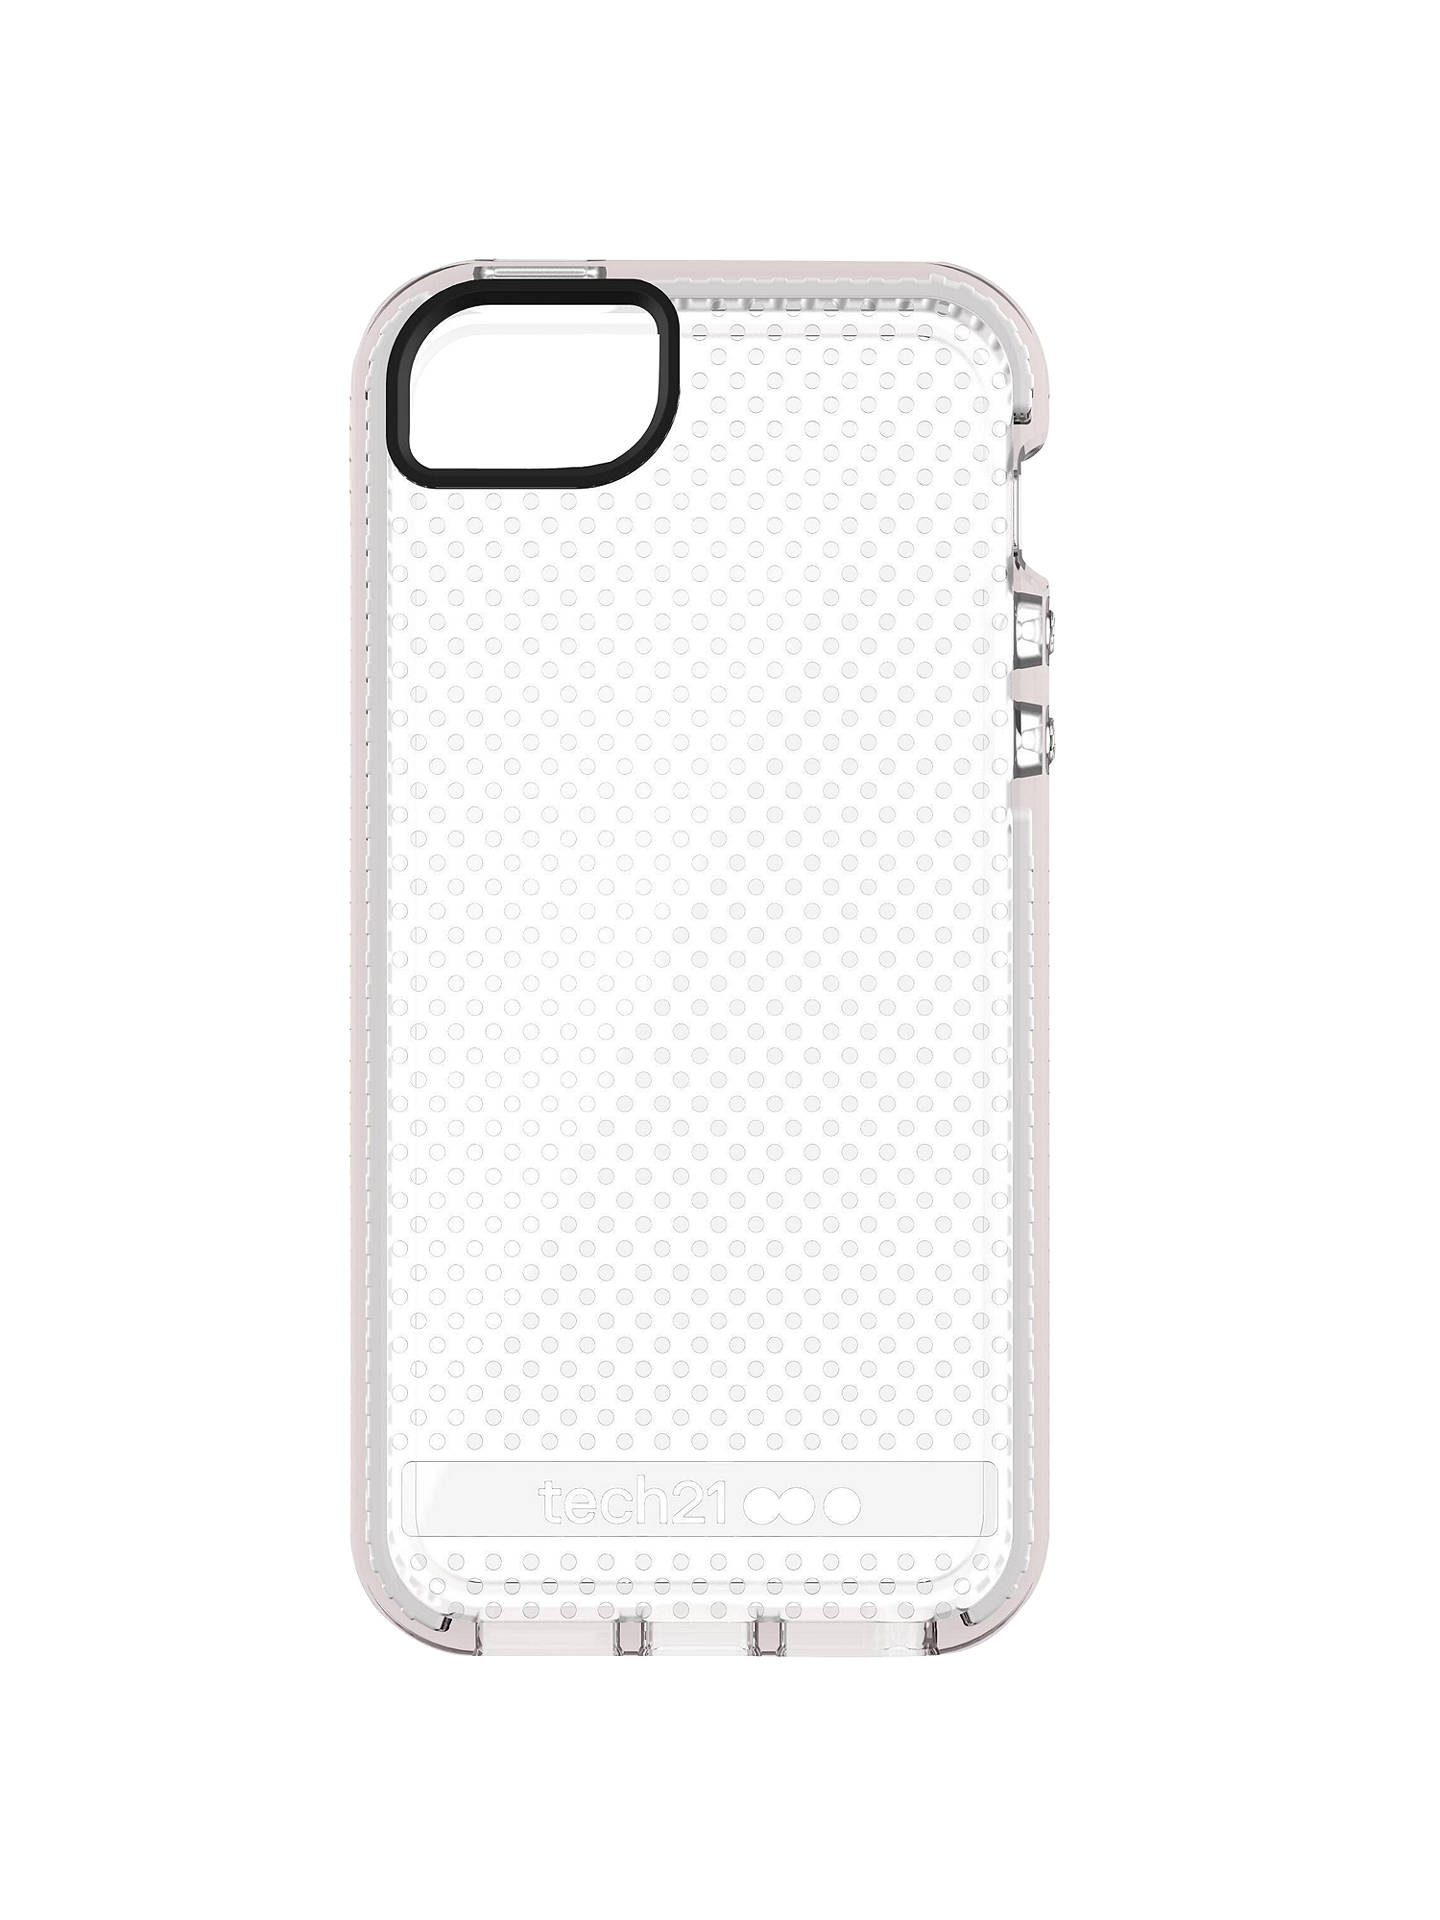 huge selection of 21b2d f1393 tech21 Evo Mesh Case for Apple iPhone 5/5s/SE, Clear White